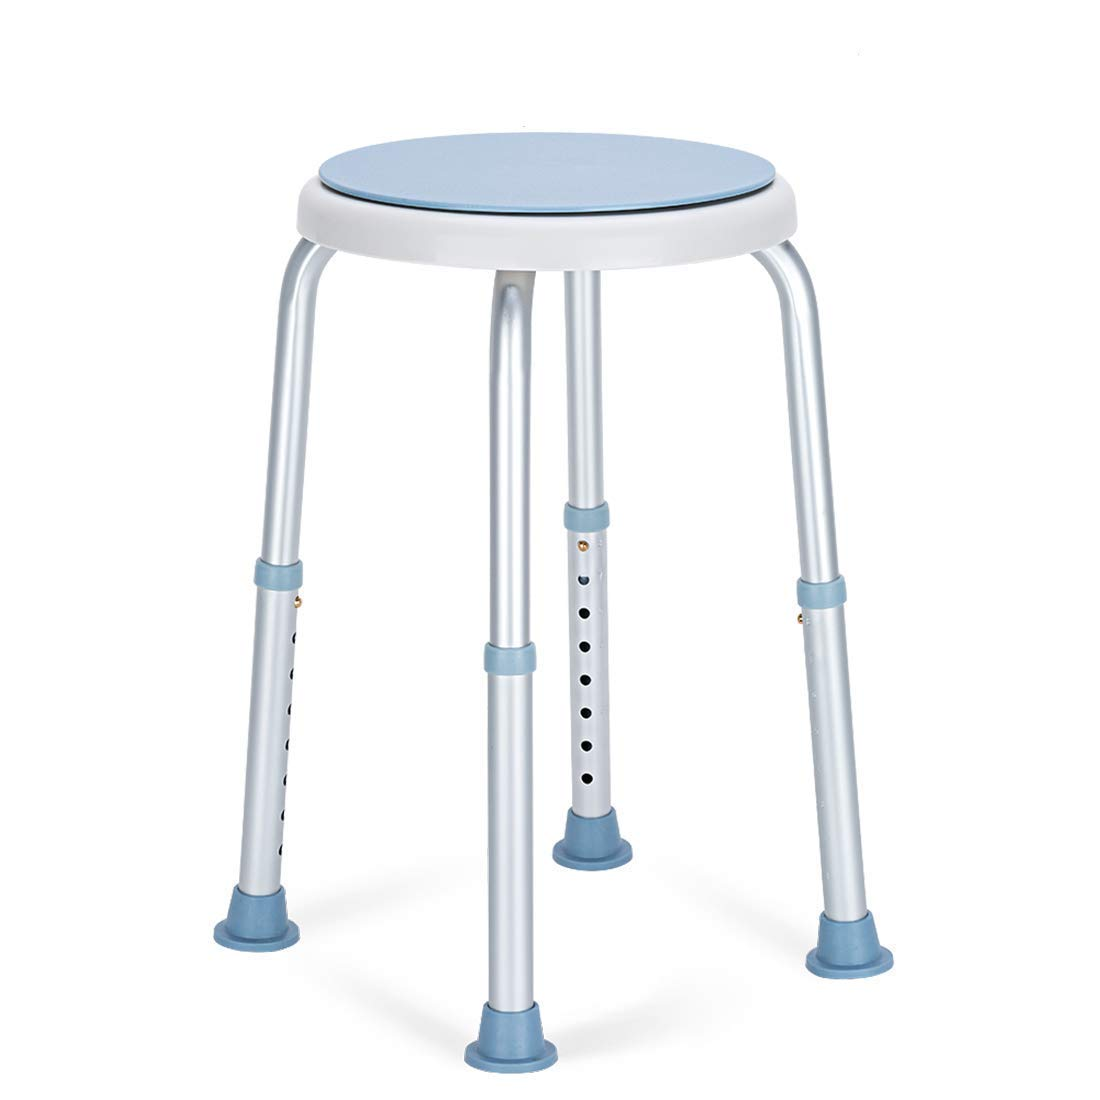 OasisSpace 360 Degree Rotating Shower Chair, Tool Free Adjustable Shower Stool Tub Chair and Bathtub Seat Bench with Anti-Slip Rubber Tips for Safety and Stability by OasisSpace